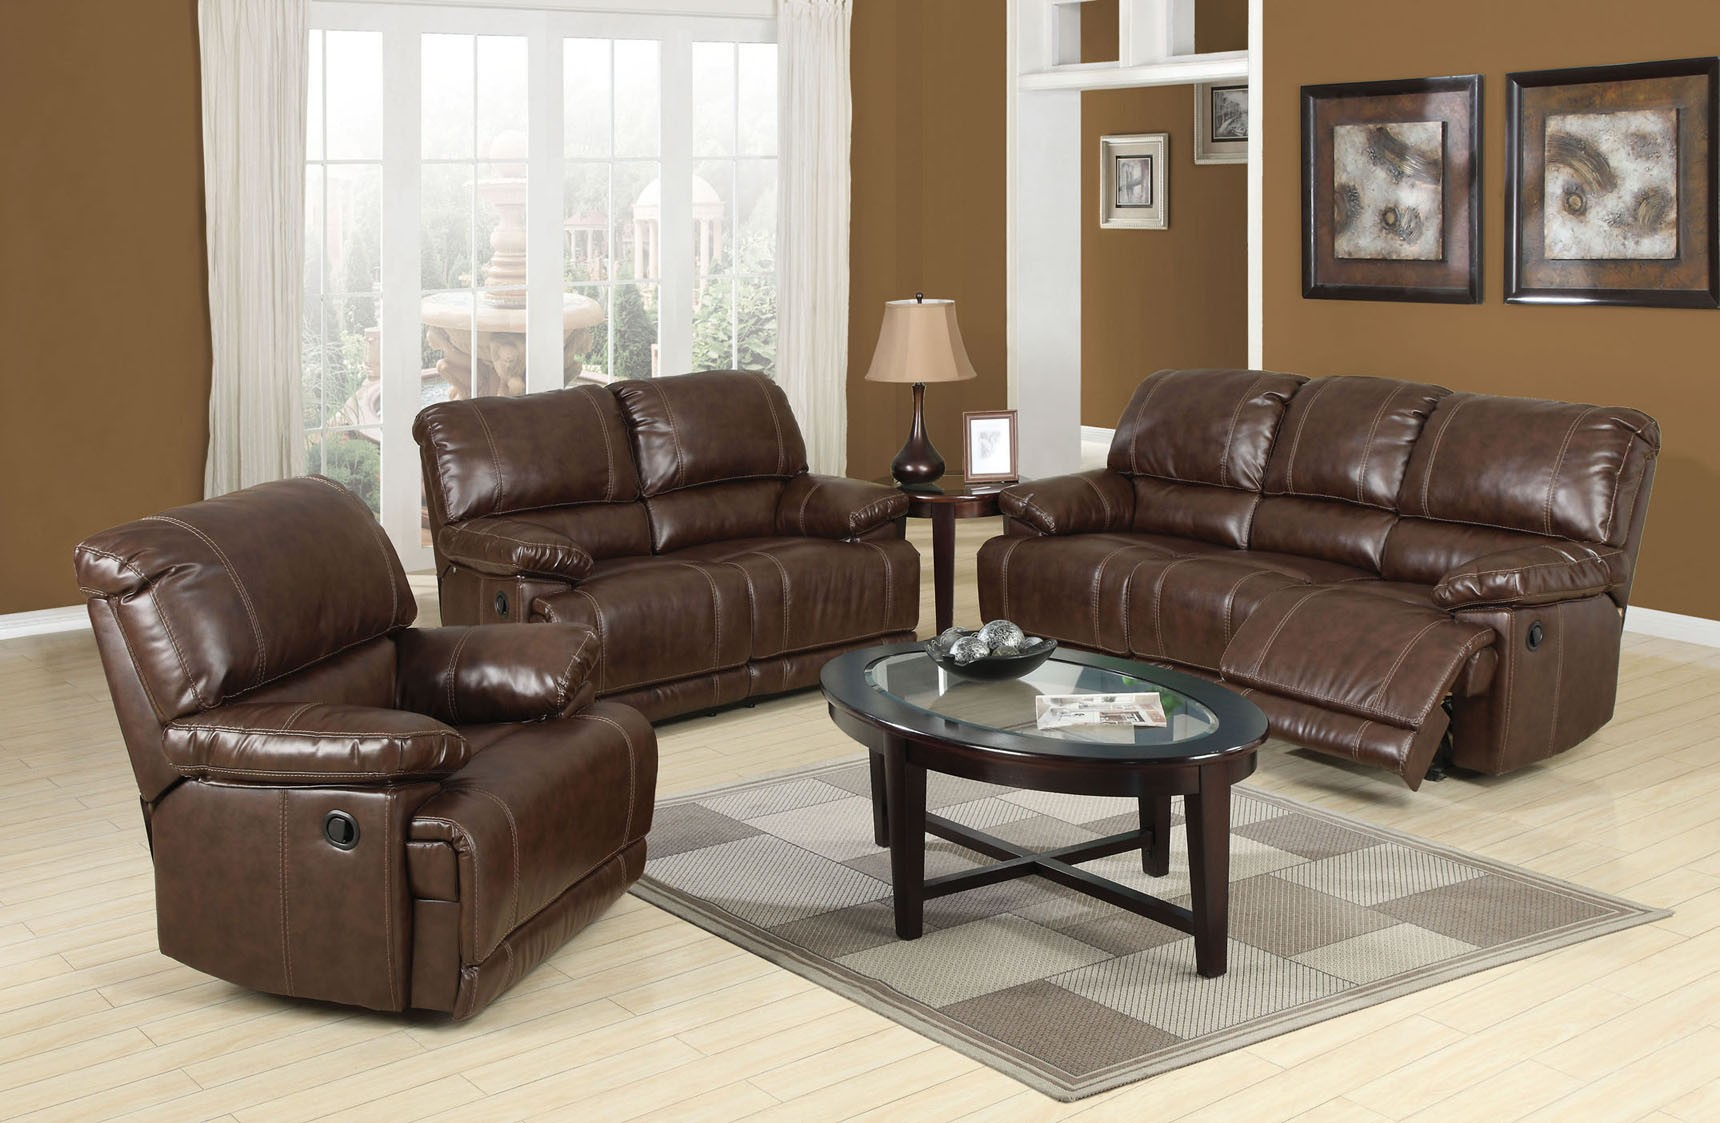 Bonded leather match reclining sofa loveseat chair 3pc set for Matching living room furniture sets